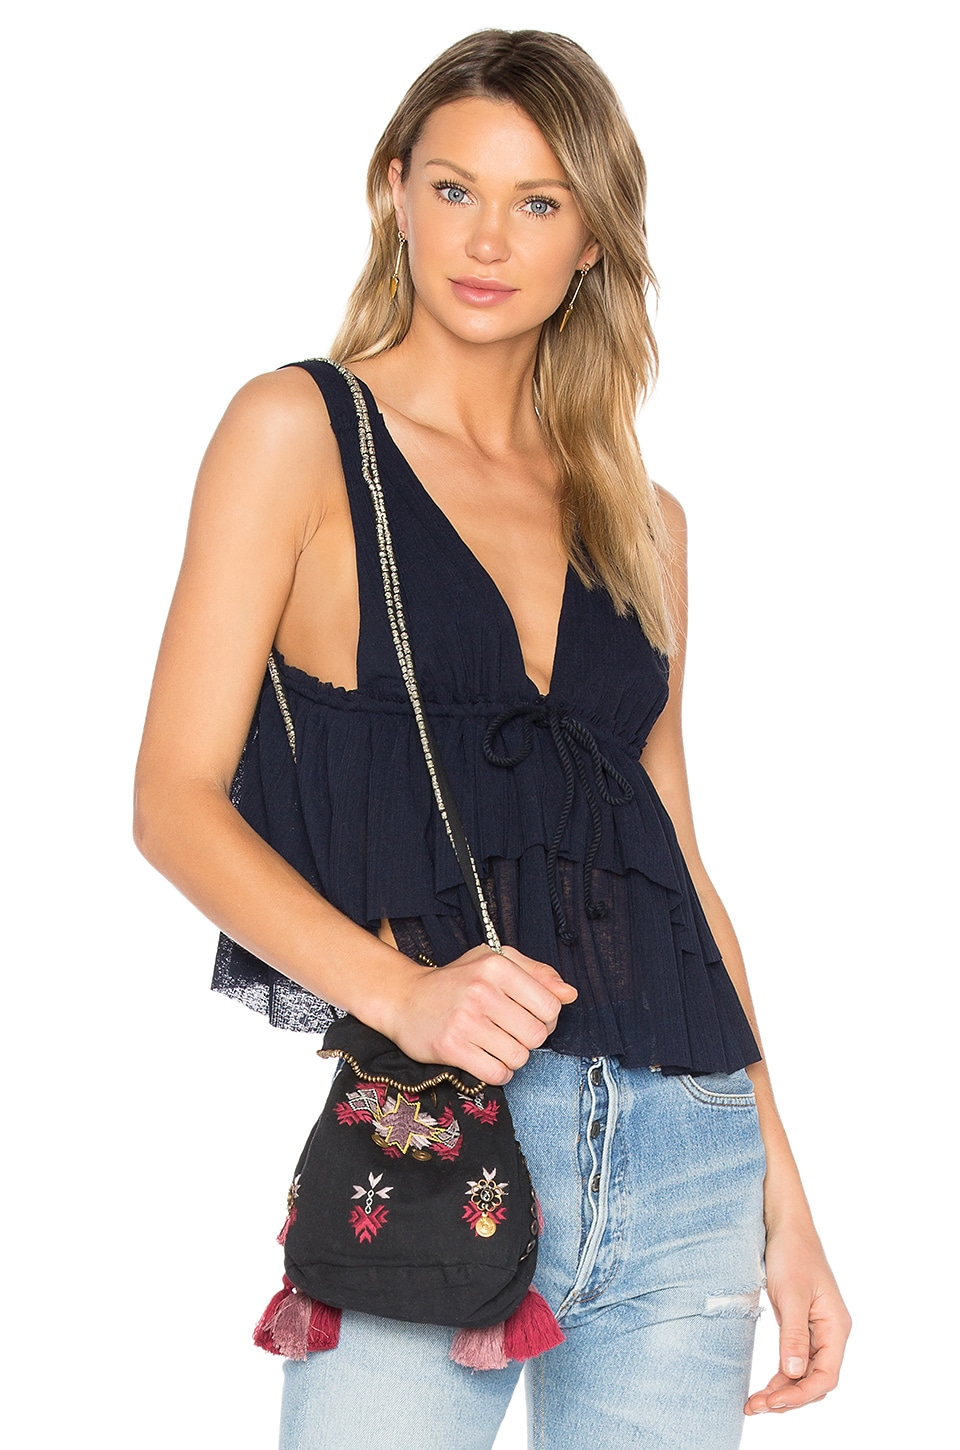 Ruffle Top by See By Chloe